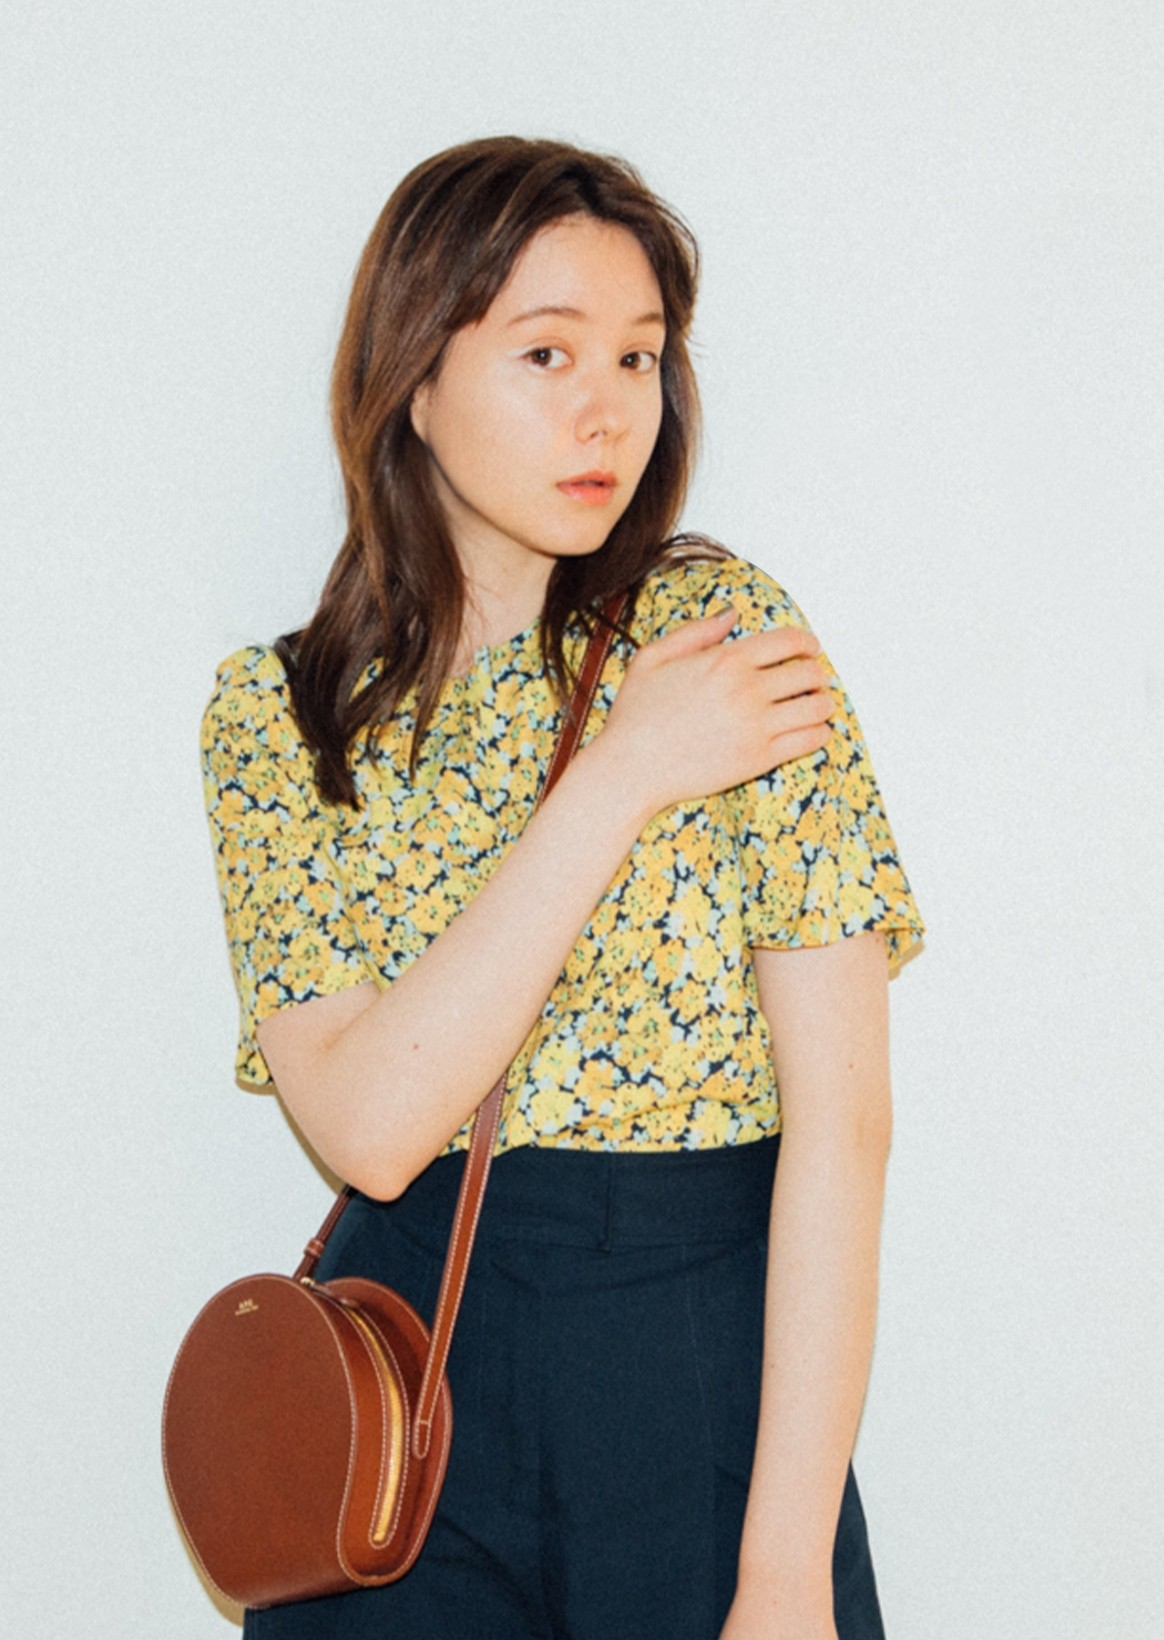 Triendl Reina X A.P.C./08sircus/emmi | On day to spend in house on day to go out. To look for item high feeling for.